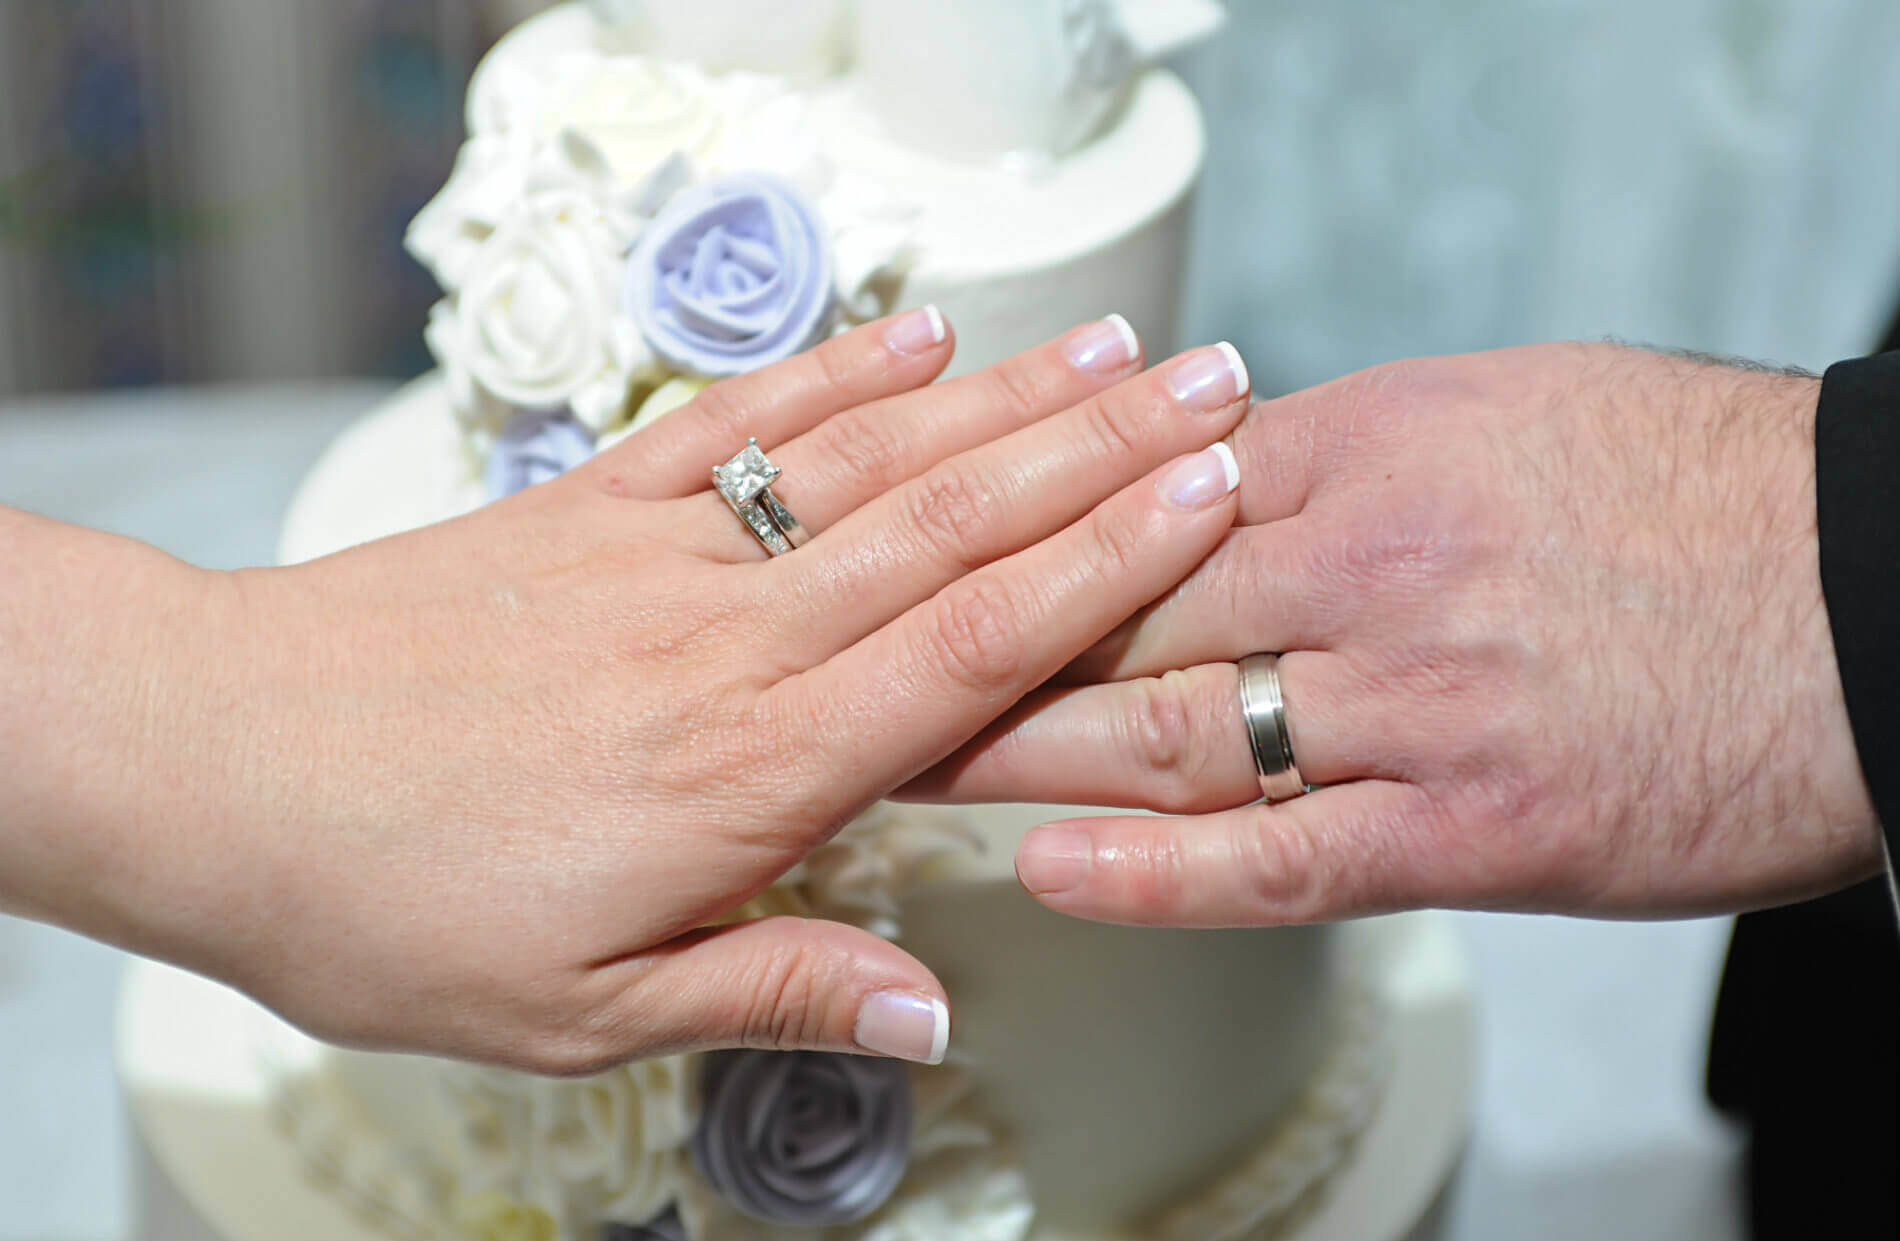 Hands of bride and groom with silver wedding rings in front of white two tier cake with lavender roses